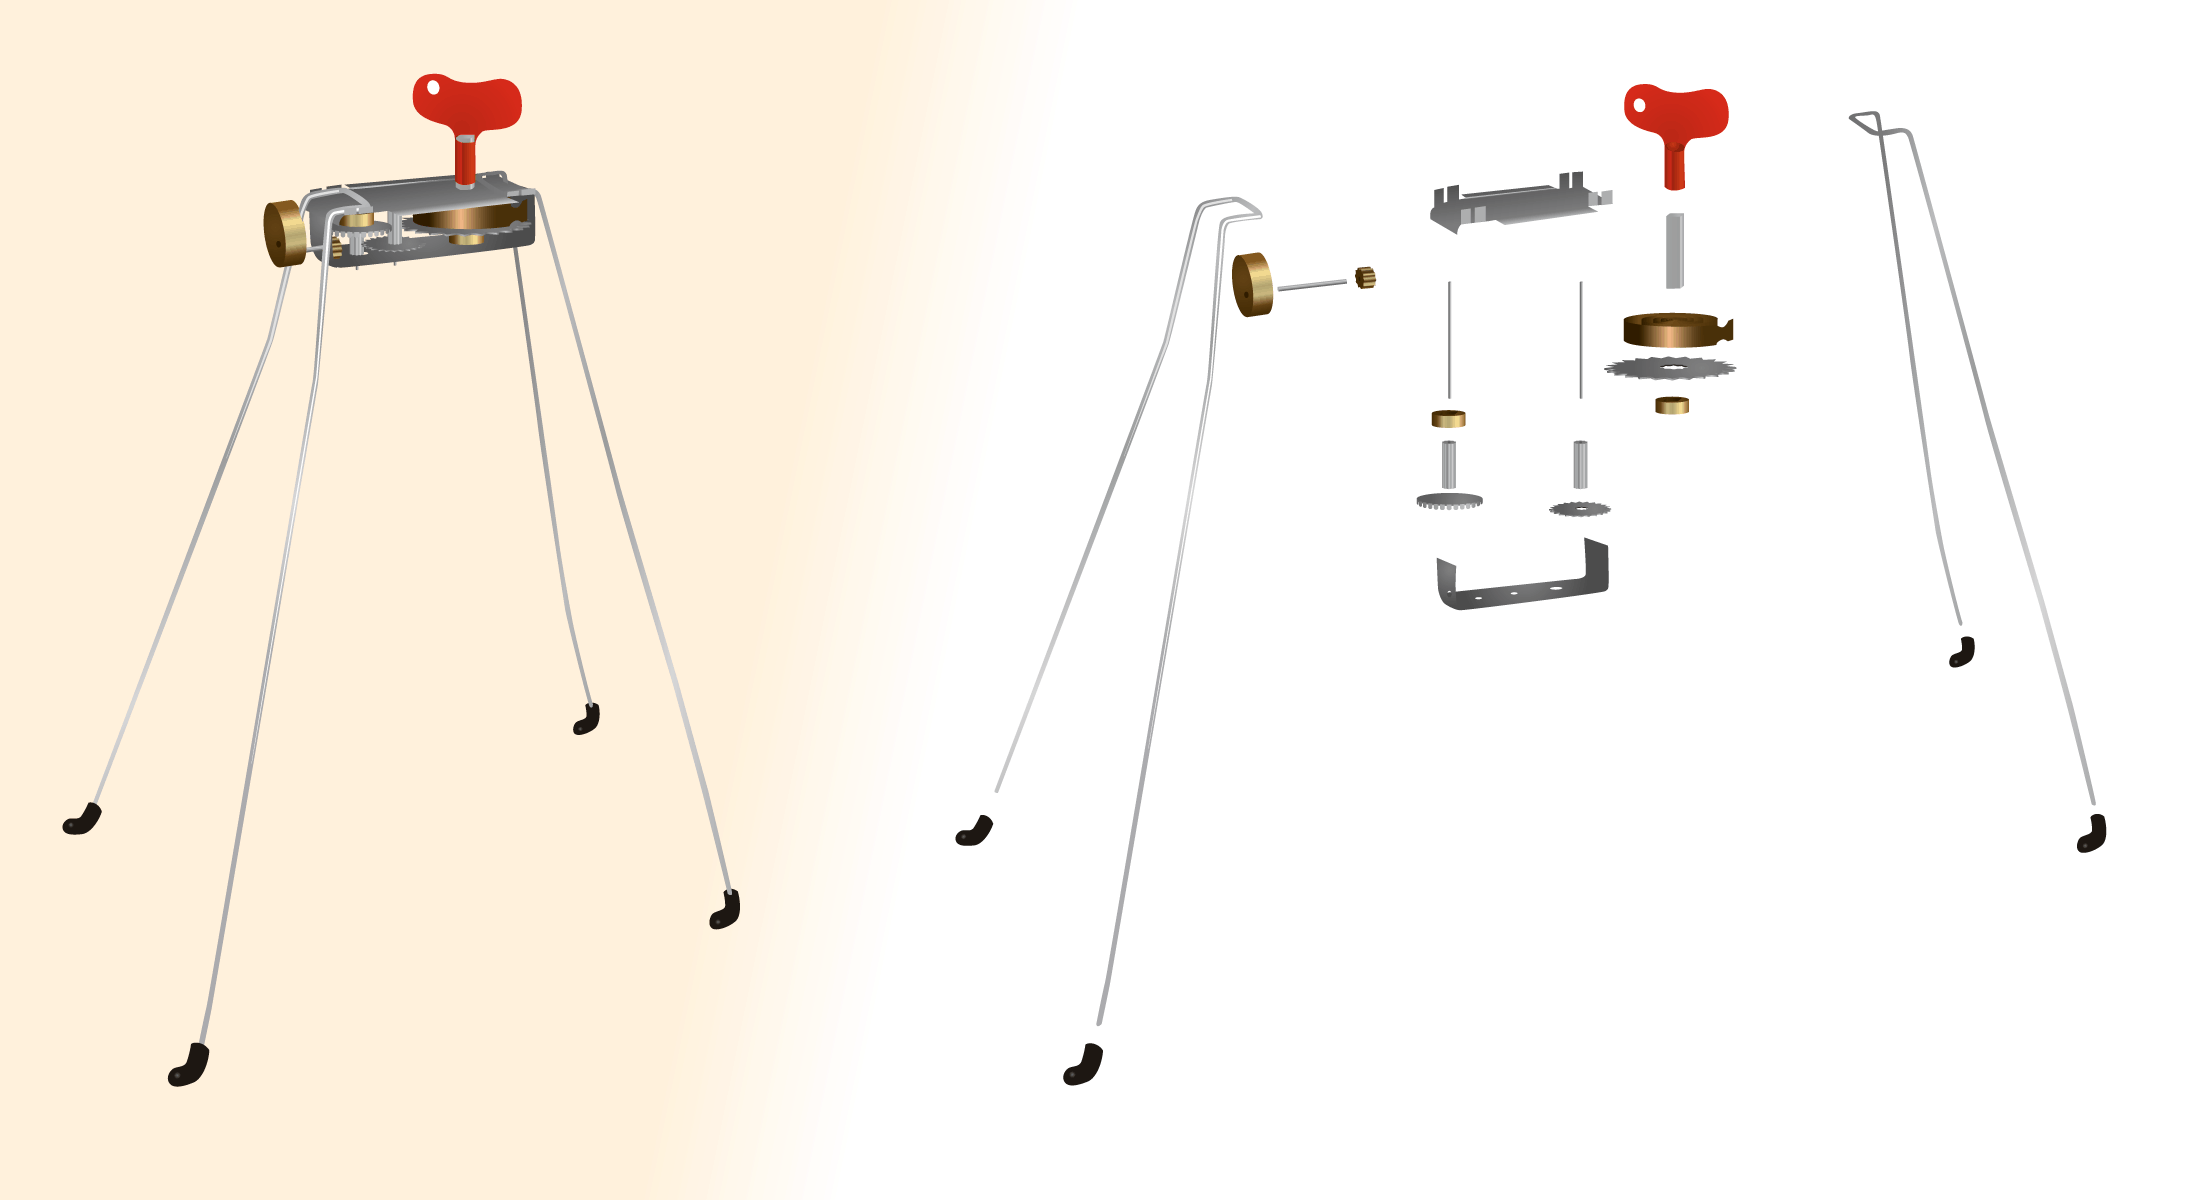 Mechanical Toy Exploded View